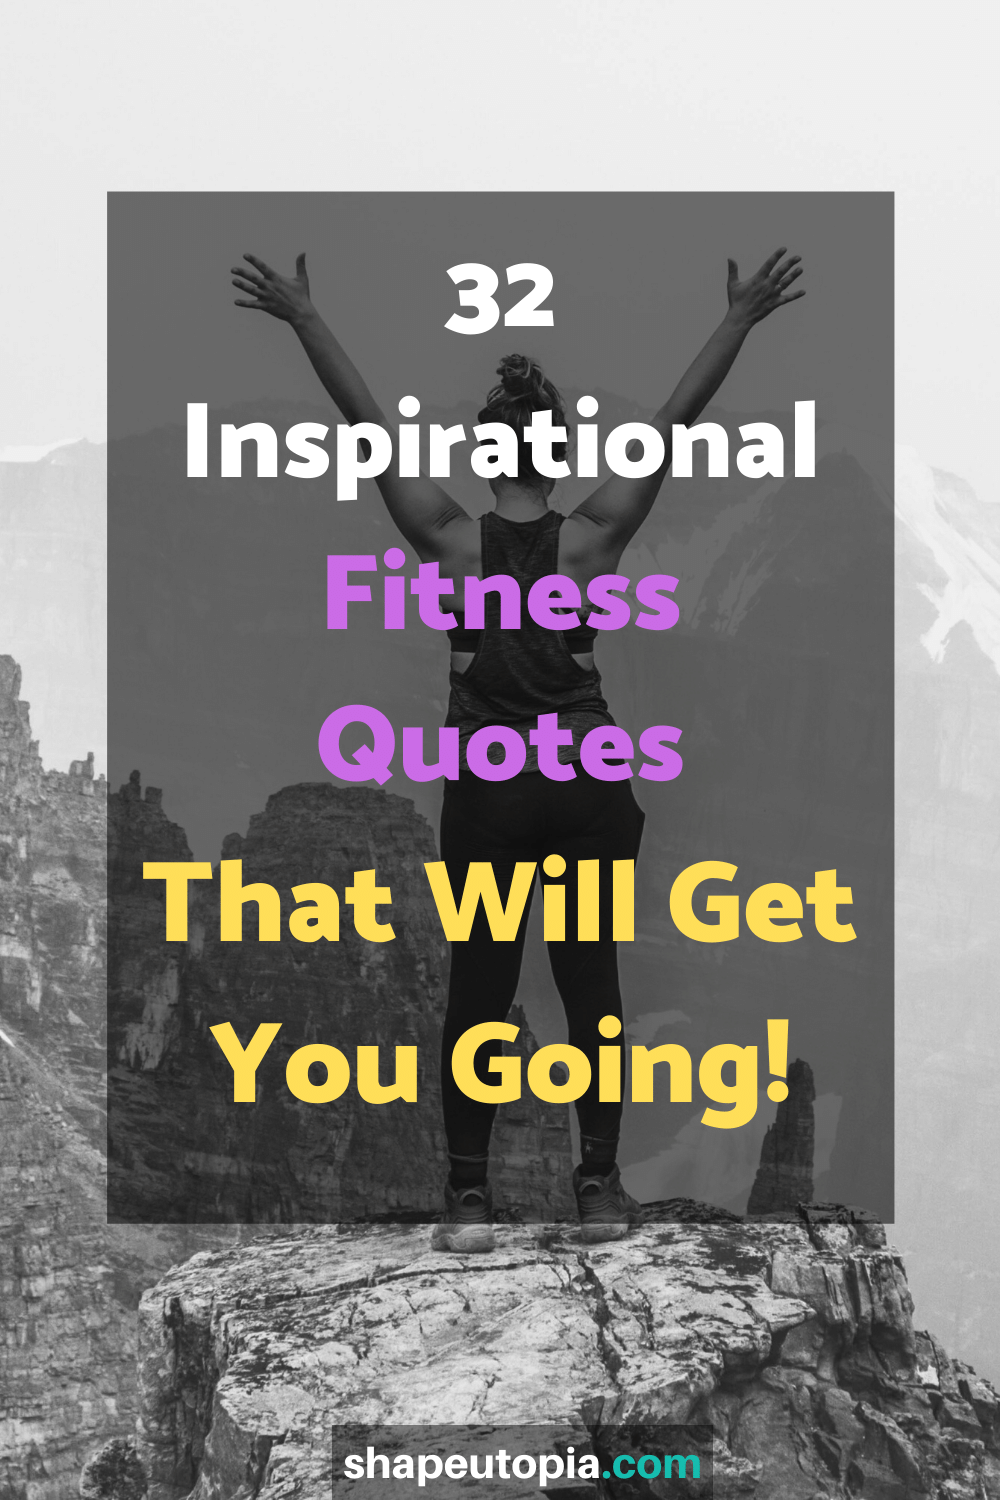 32 Inspirational Fitness Quotes That Will Get You Going